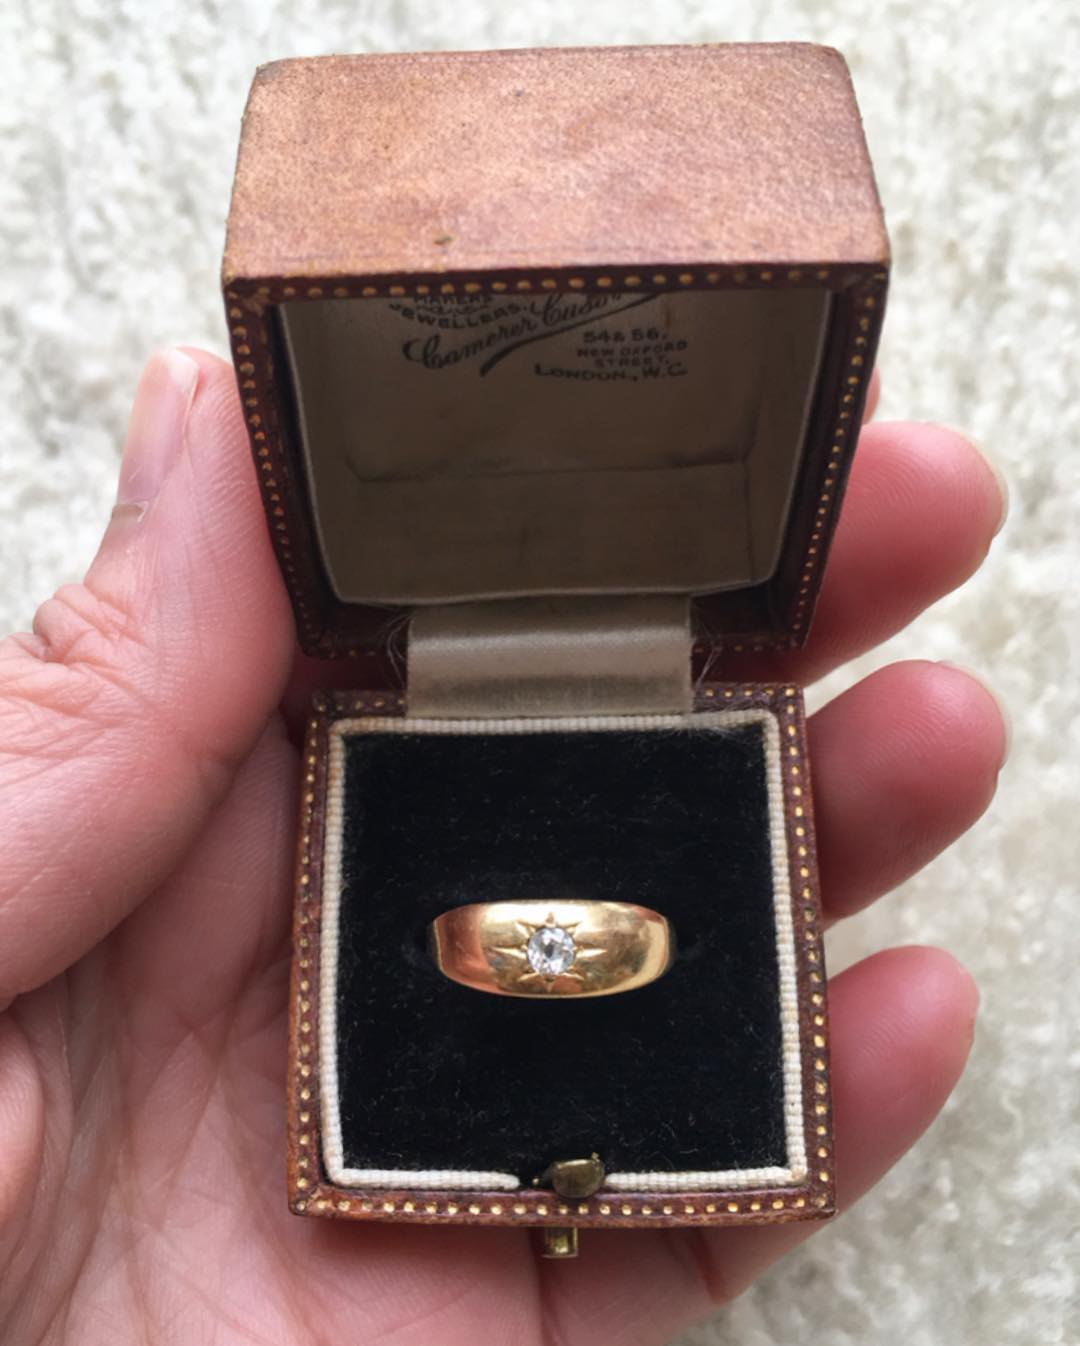 **SOLD**E D W A R D I A N  G Y P S Y  R I N G  This antique stunner is a US size 5 14, 18K yellow gold. Circa 1909, maker C.S. London and weighs more than 2 grams.  DM for pre-Etsy price! Antique chalcedony fob and leather ring box on sale in our Etsy shop. (Chain and tassel NFS). goldtassel